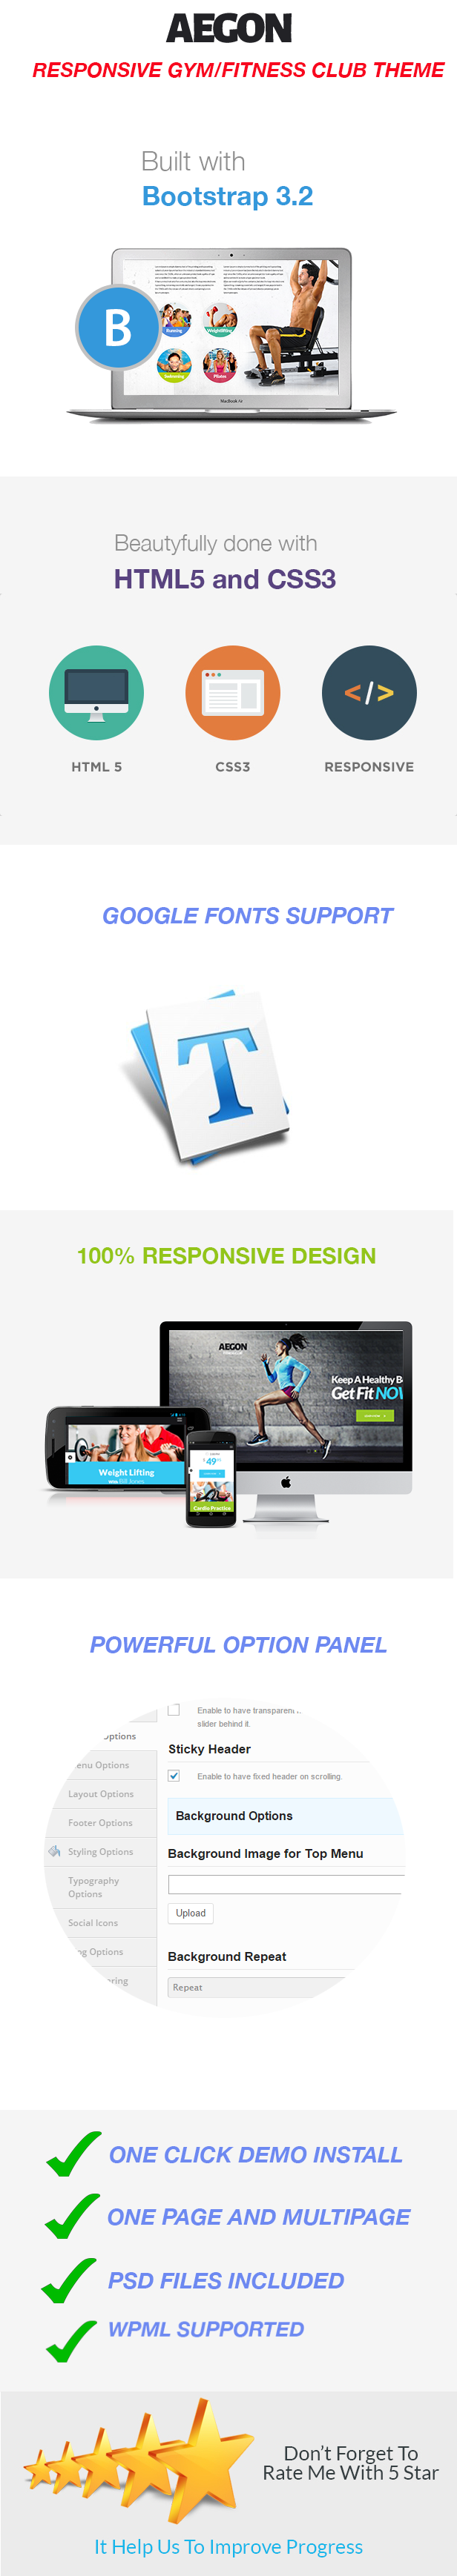 Background image 100 responsive - Main Features